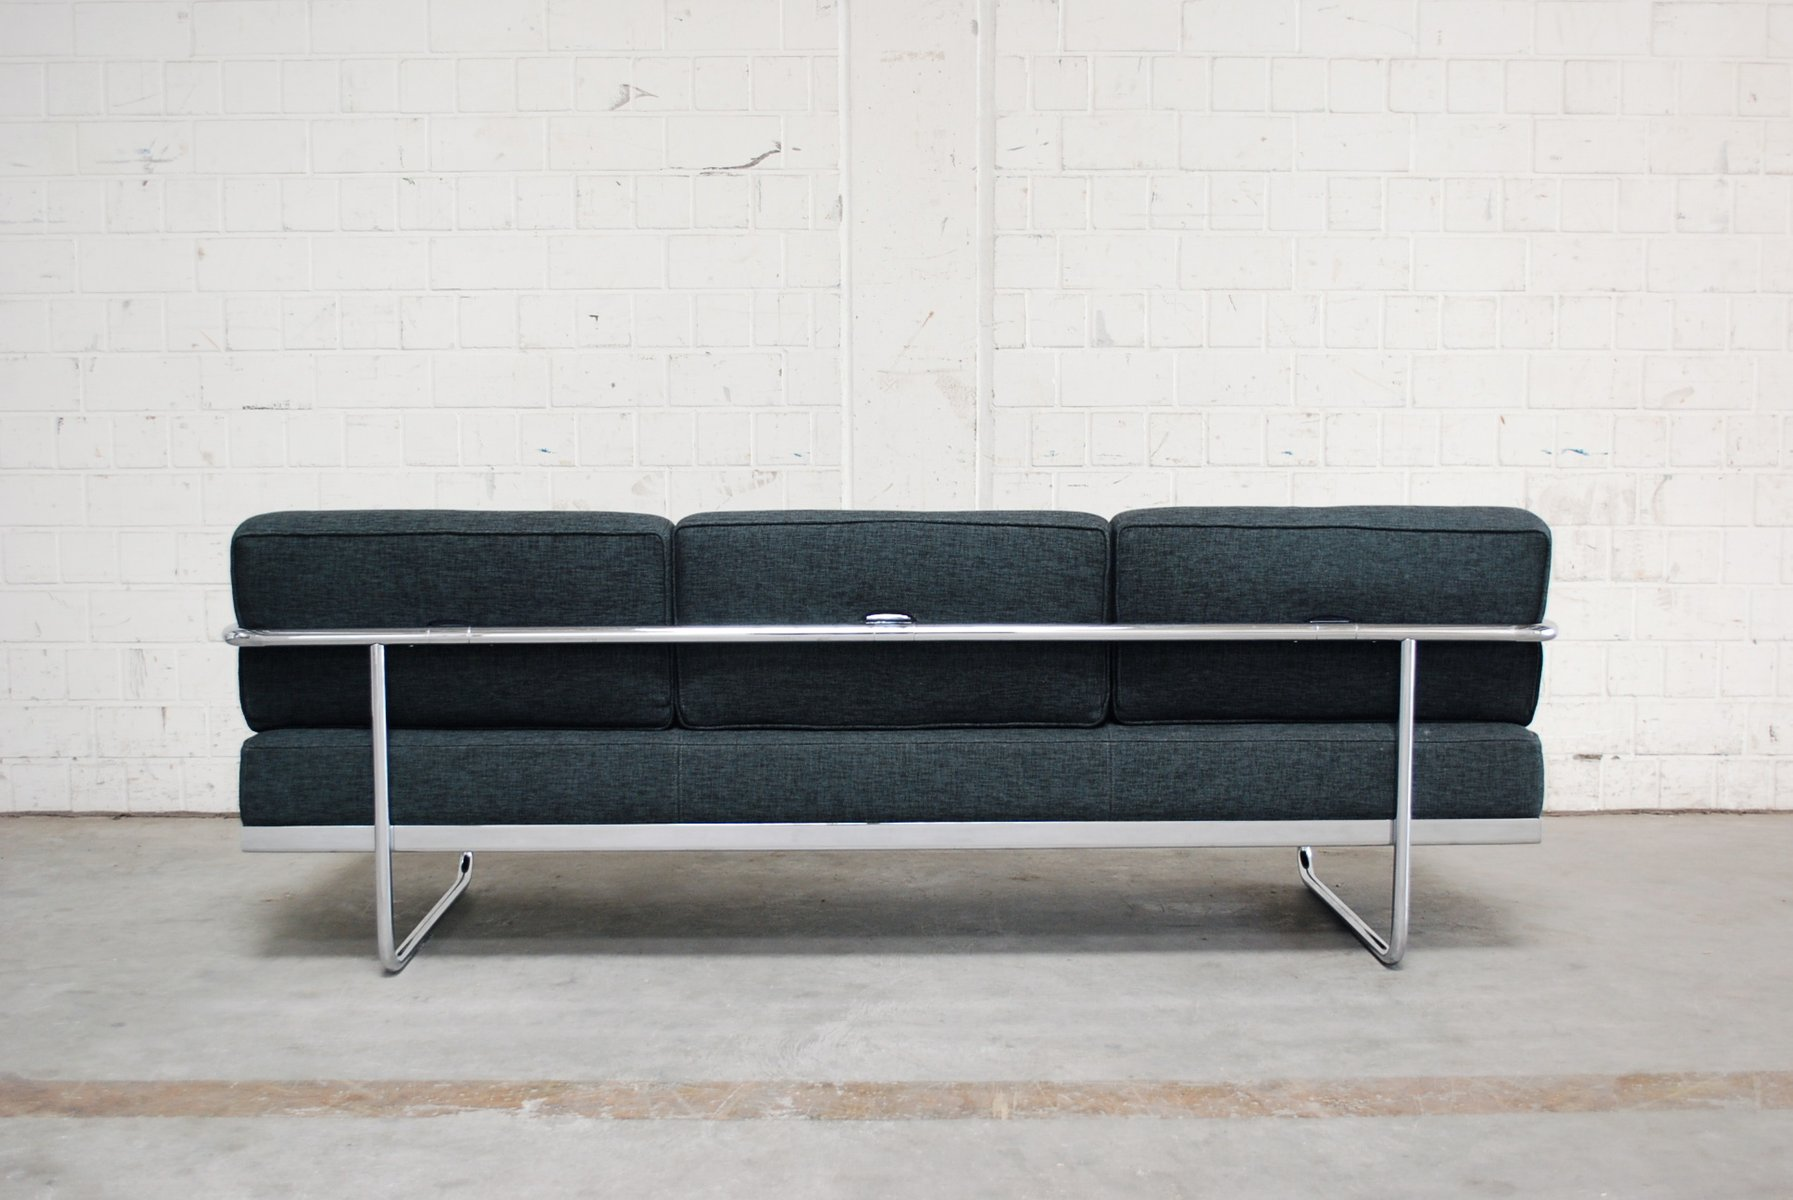 Vintage lc5 f daybed by le corbusier for cassina for sale for Corbusier sessel 00 schneider